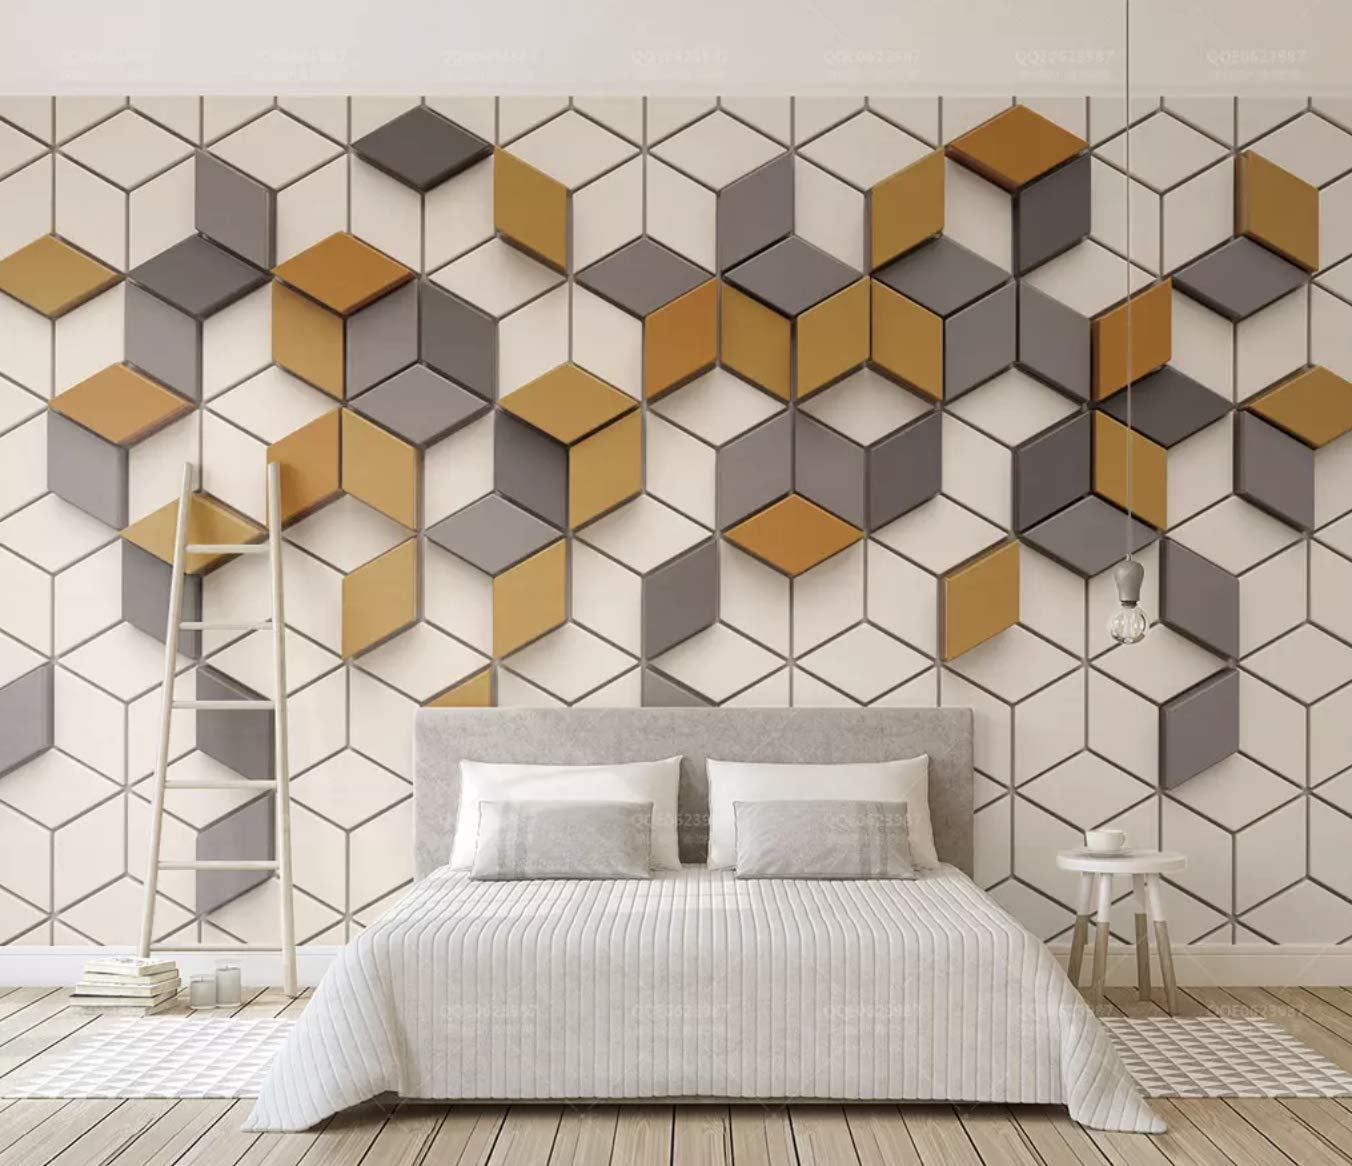 Groovy Amazon Com Murwall Geometric Wallpaper Yellow Gray Interior Design Ideas Gentotryabchikinfo